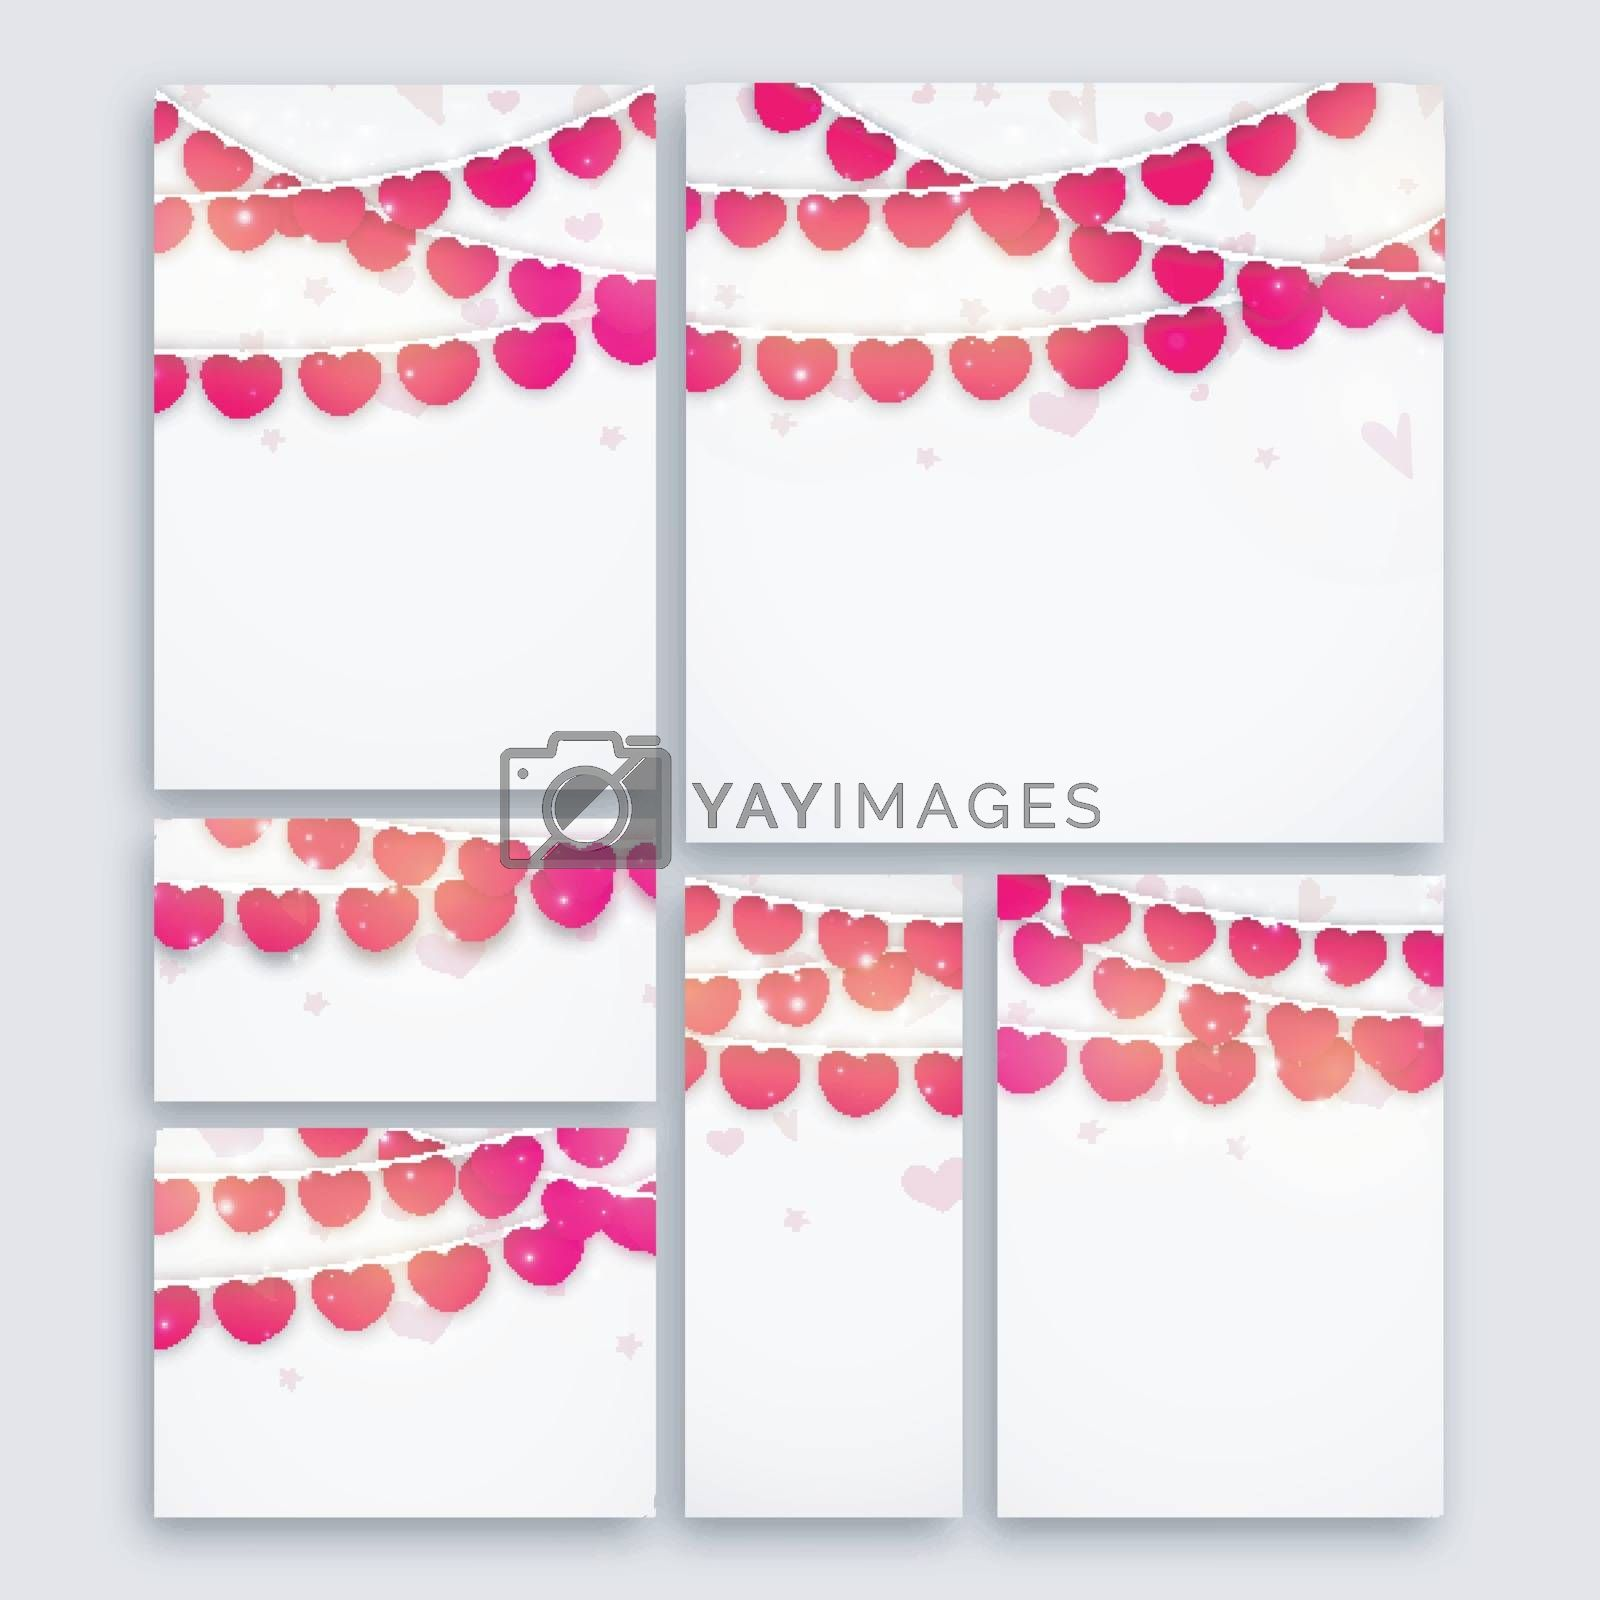 Set of Greeting cards, Invitations, Banners or Post with colorful Hearts decoration for Happy Valentine's Day Celebration.